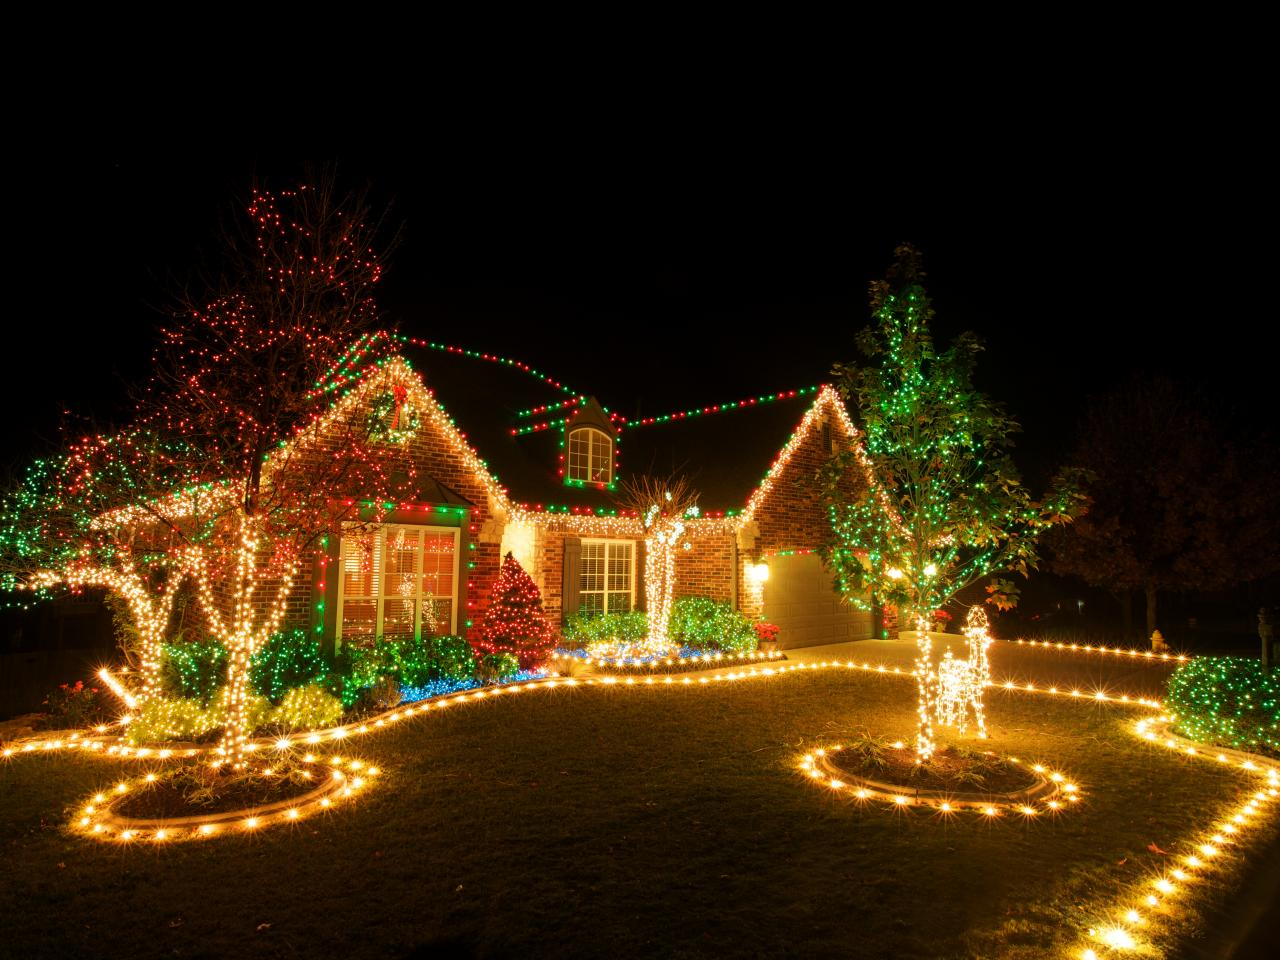 outdoor christmas lighting tips - Christmas Tree With Lights And Decorations